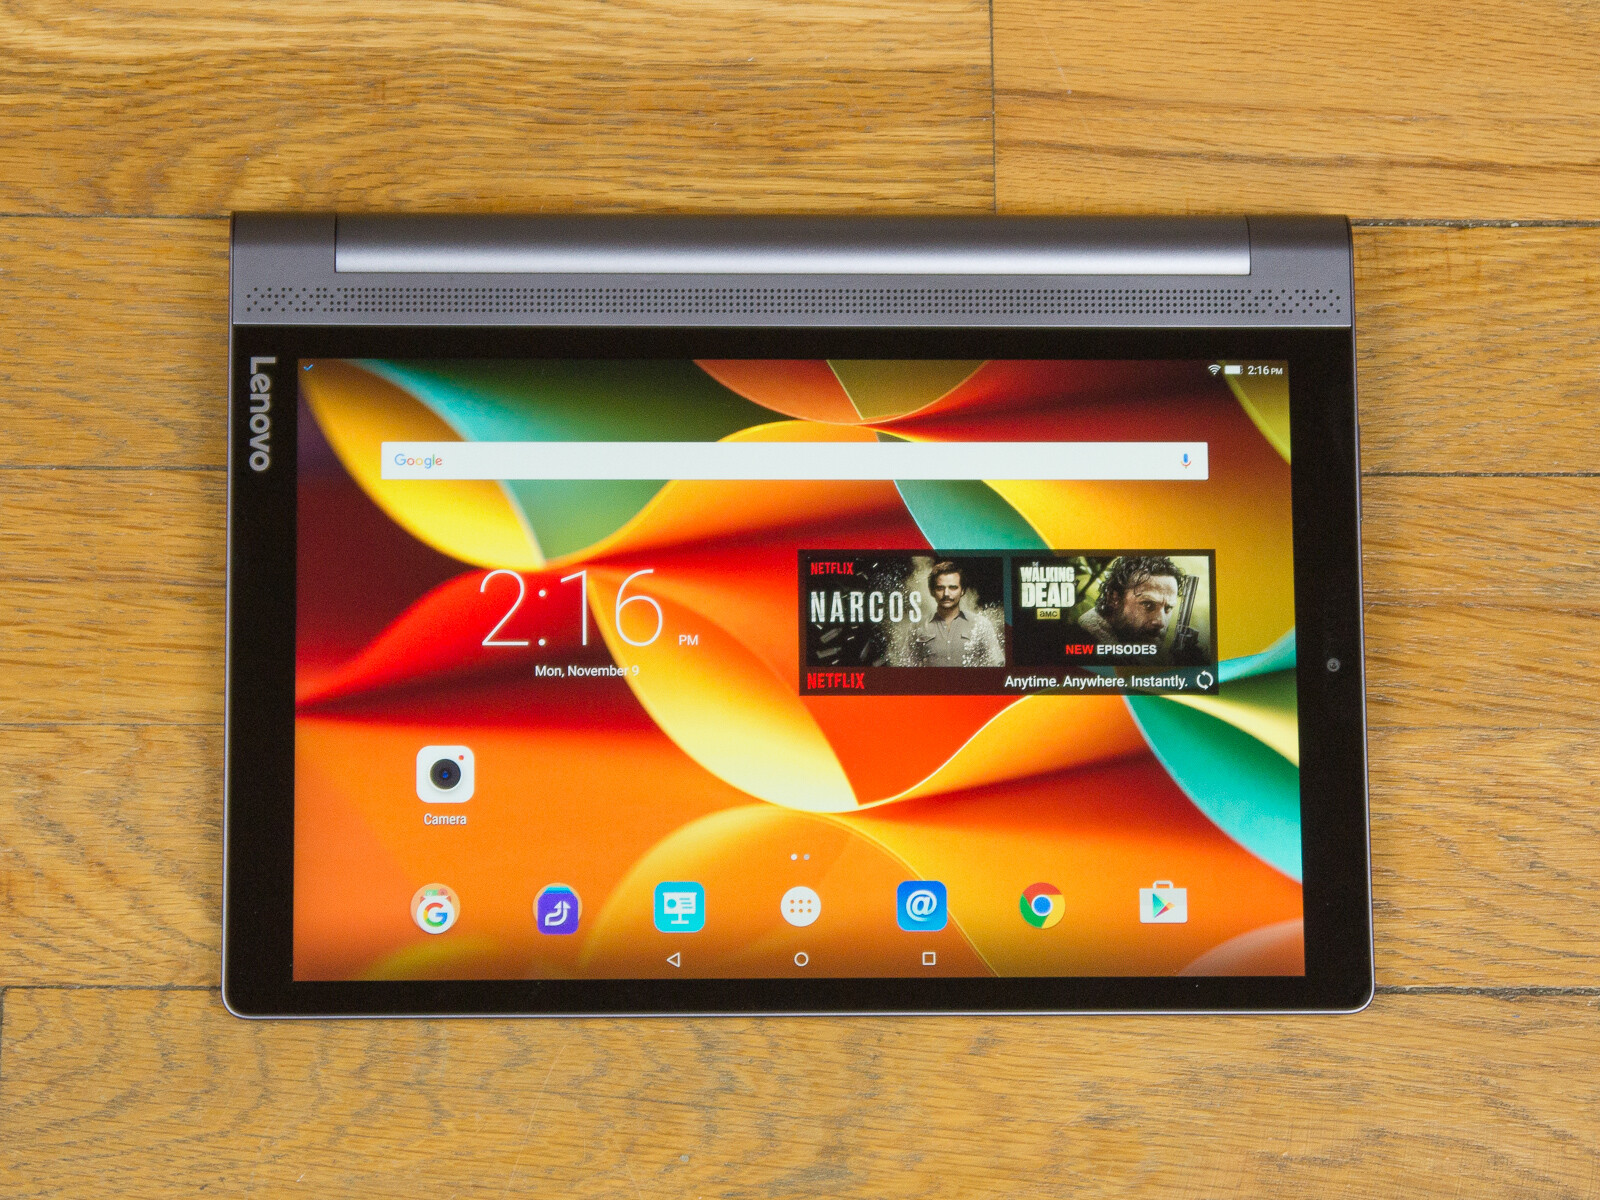 Lenovo Yoga Tab 3 Pro: the Review